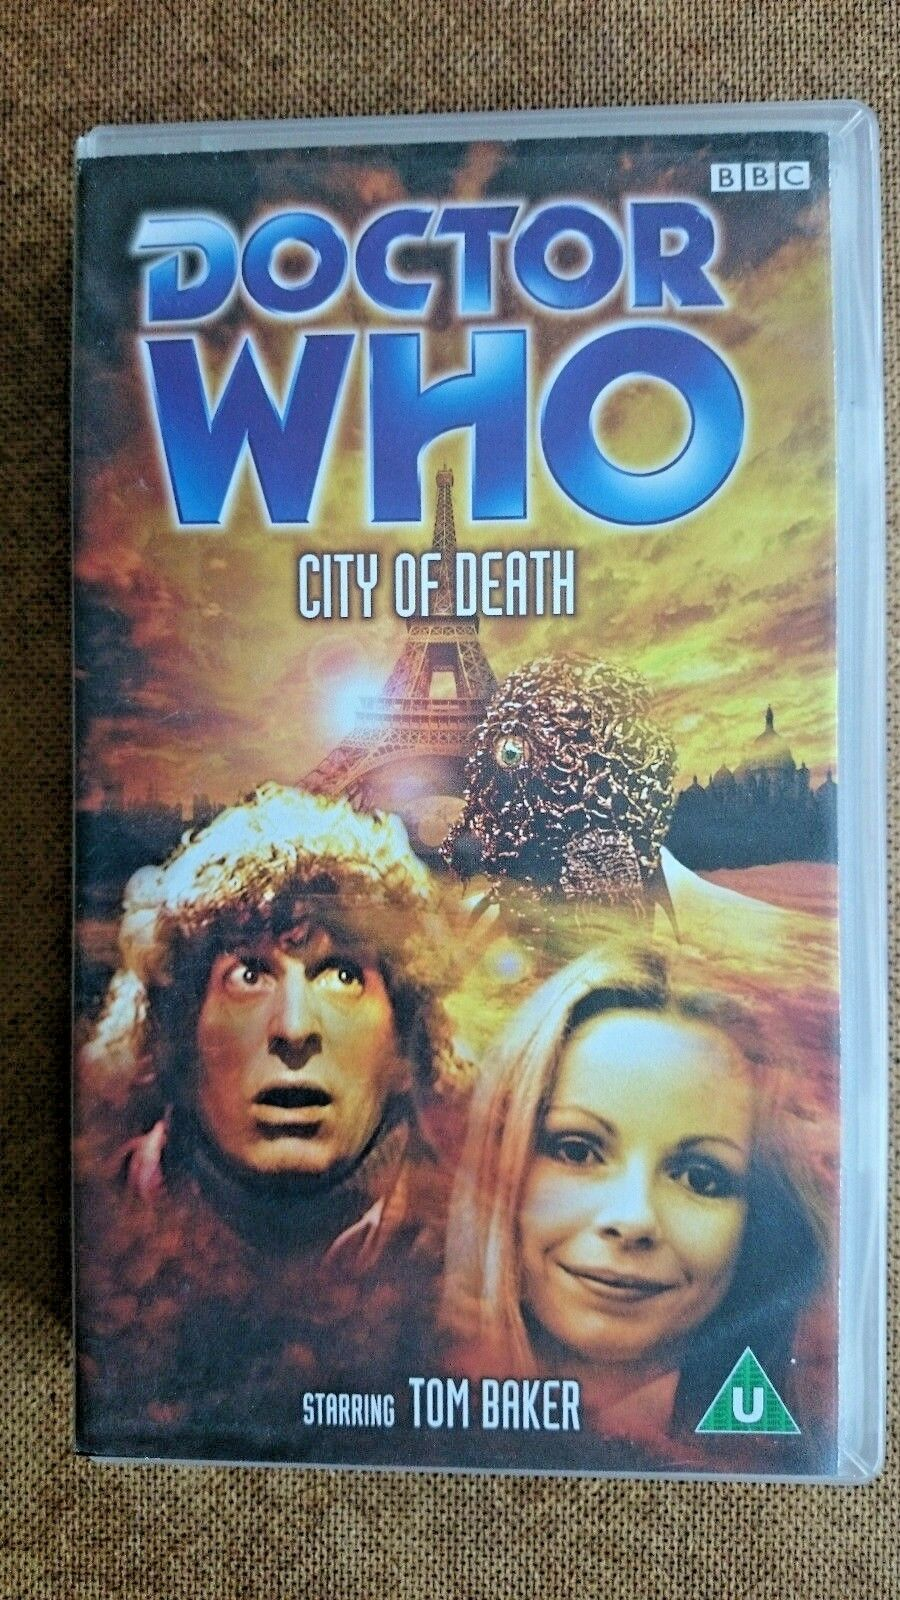 Doctor Who - City Of Death (VHS, 2001) - Tom Baker